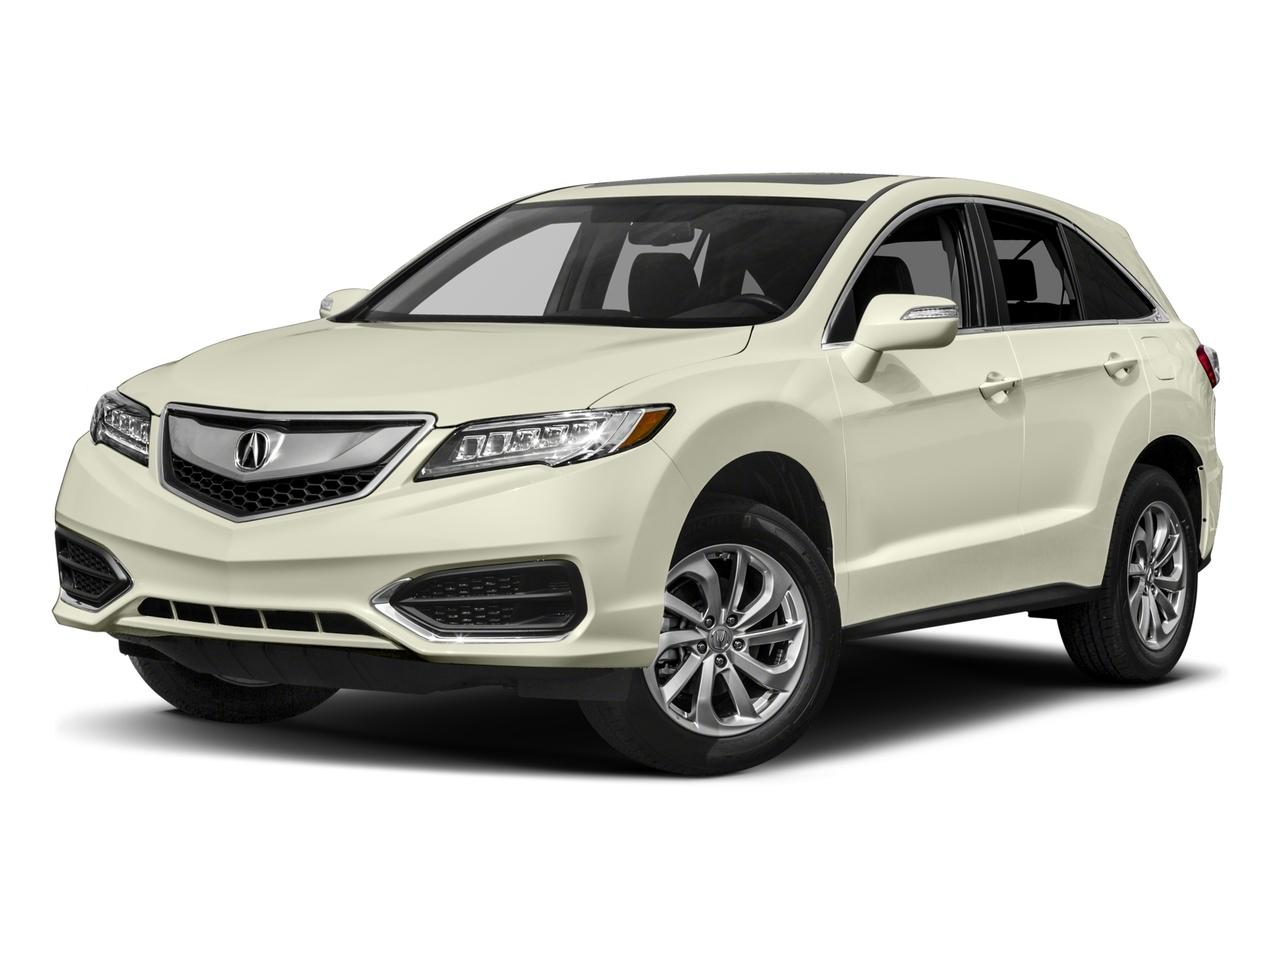 2017 Acura RDX Vehicle Photo in Trevose, PA 19053